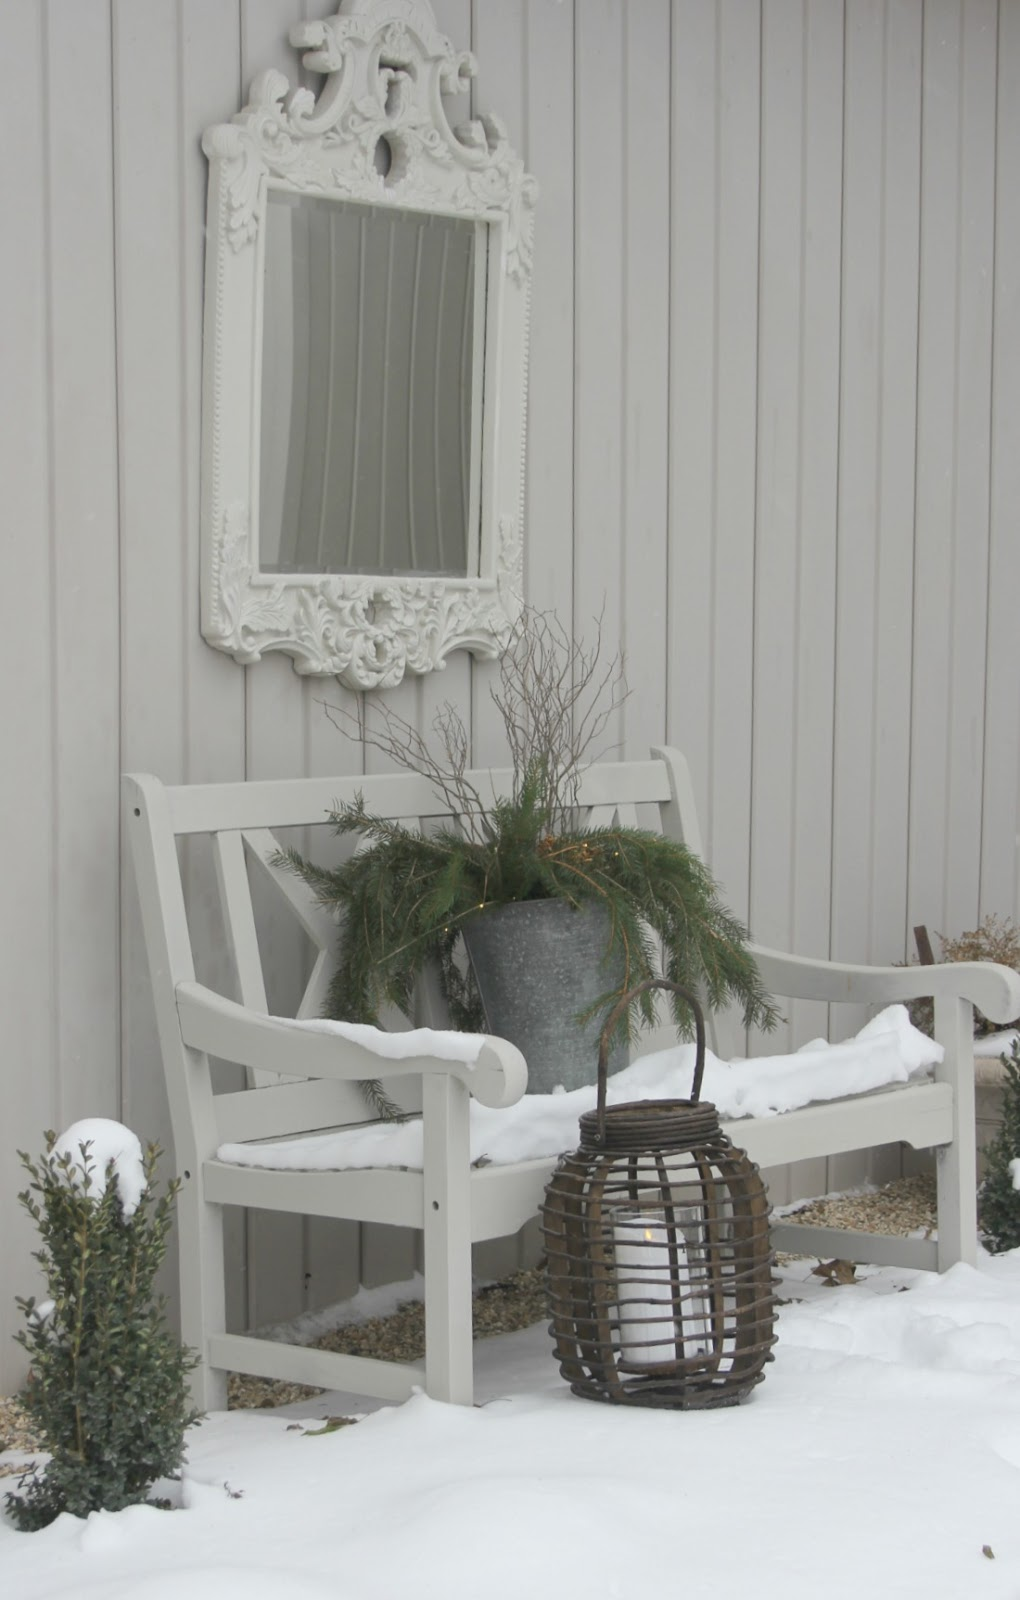 Serene white bench and mirror with winter holiday decor - Hello Lovely Studio. #christmas #hellolovelystudio #swedishchristmas